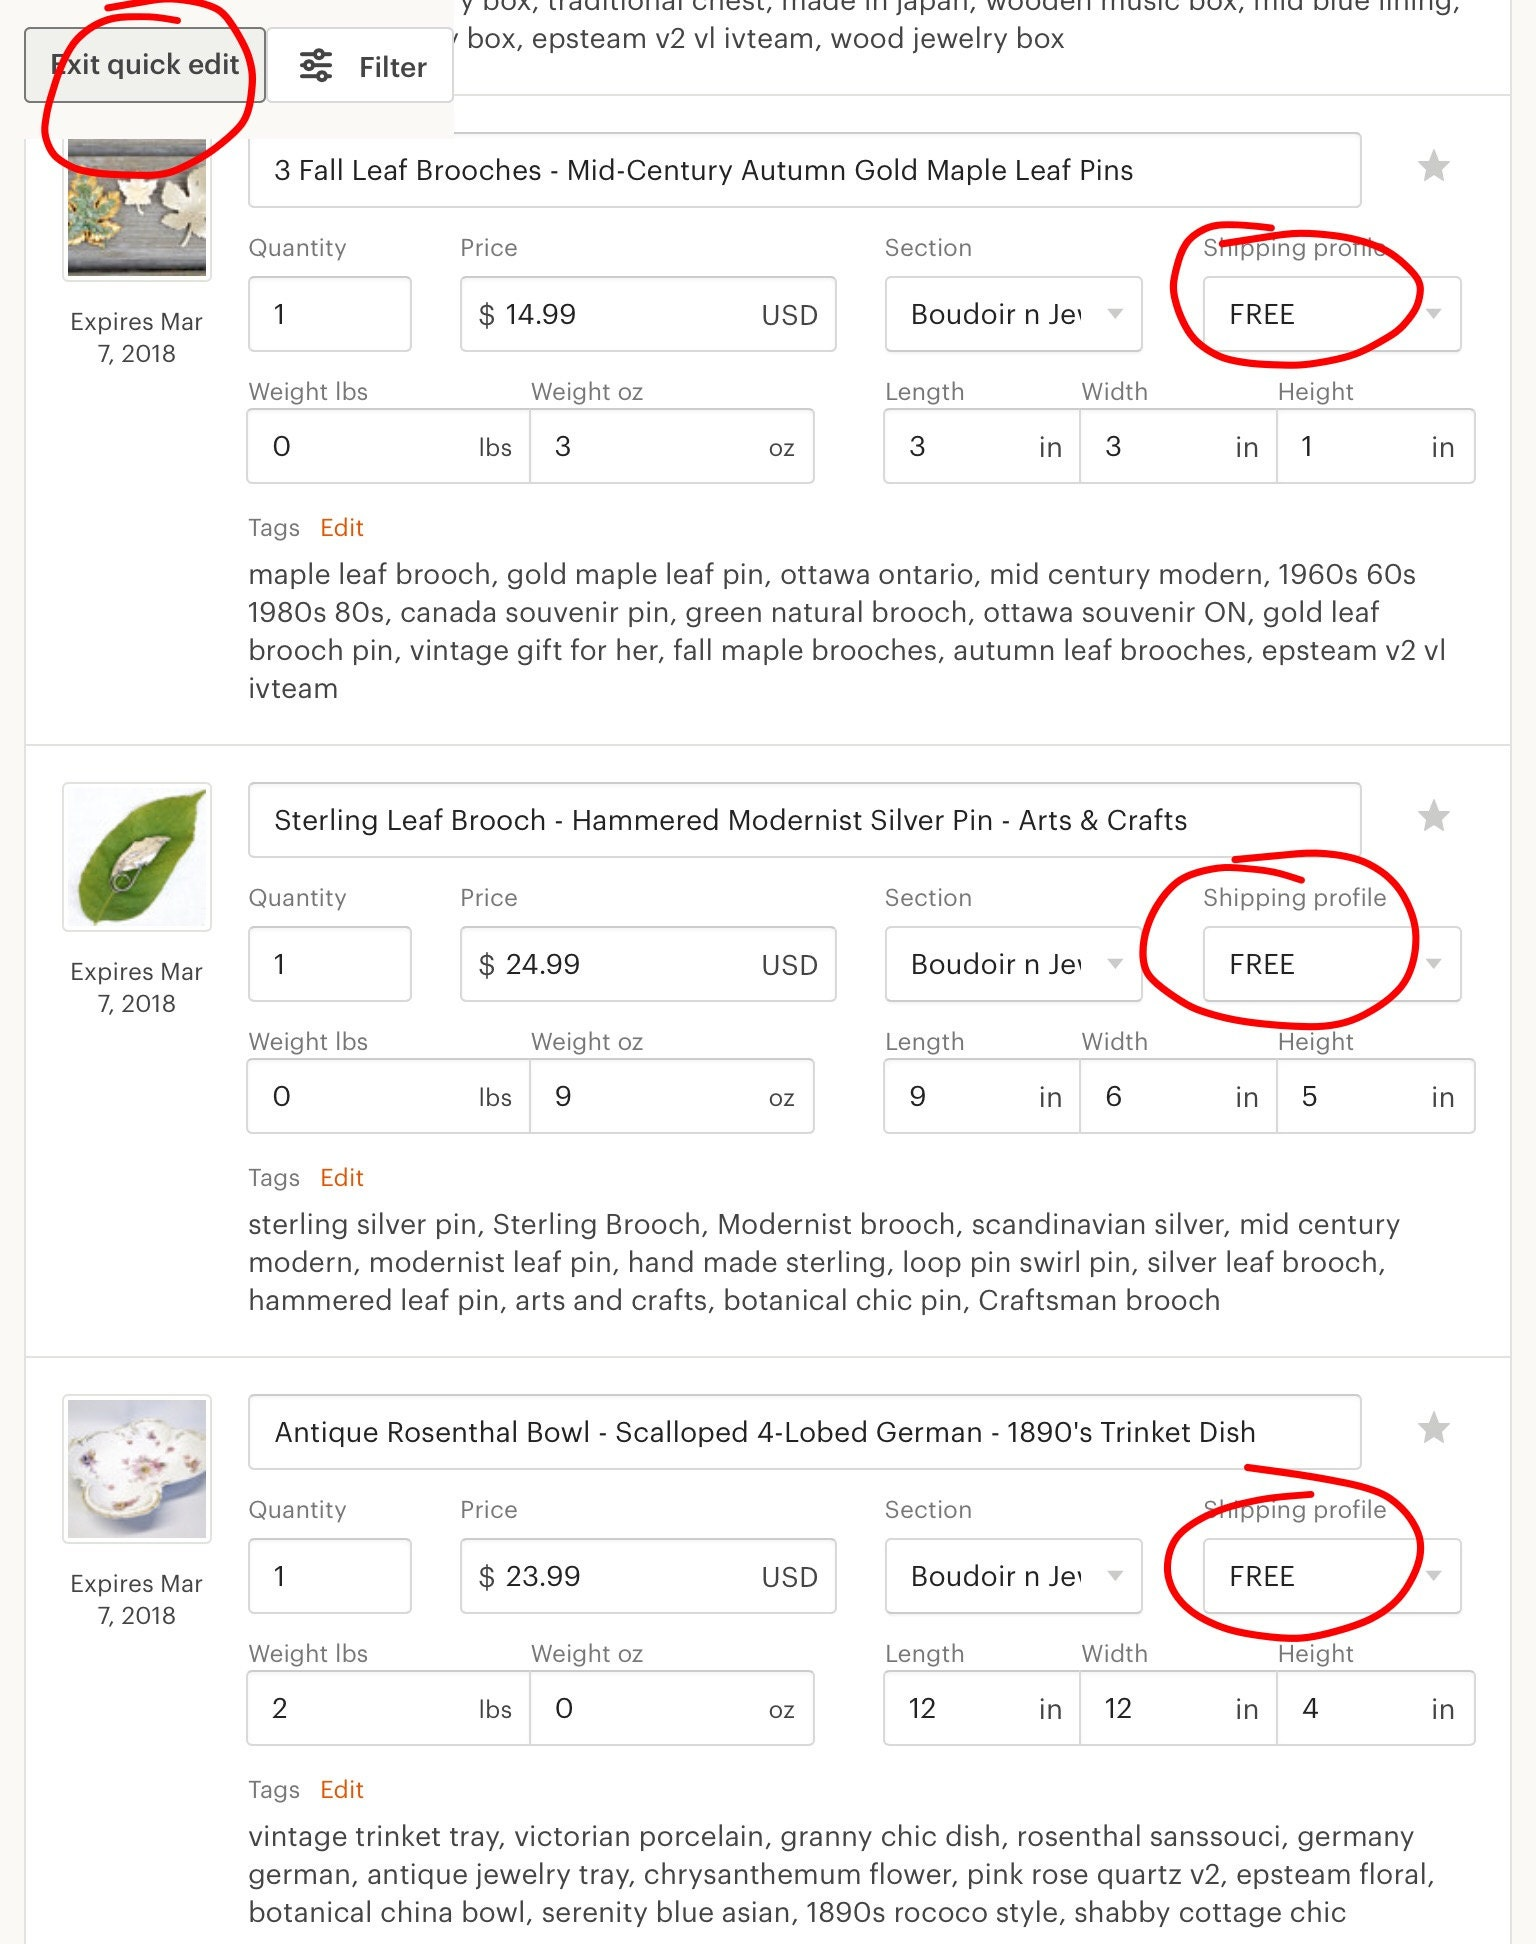 Etsy quick edit feature for free listings